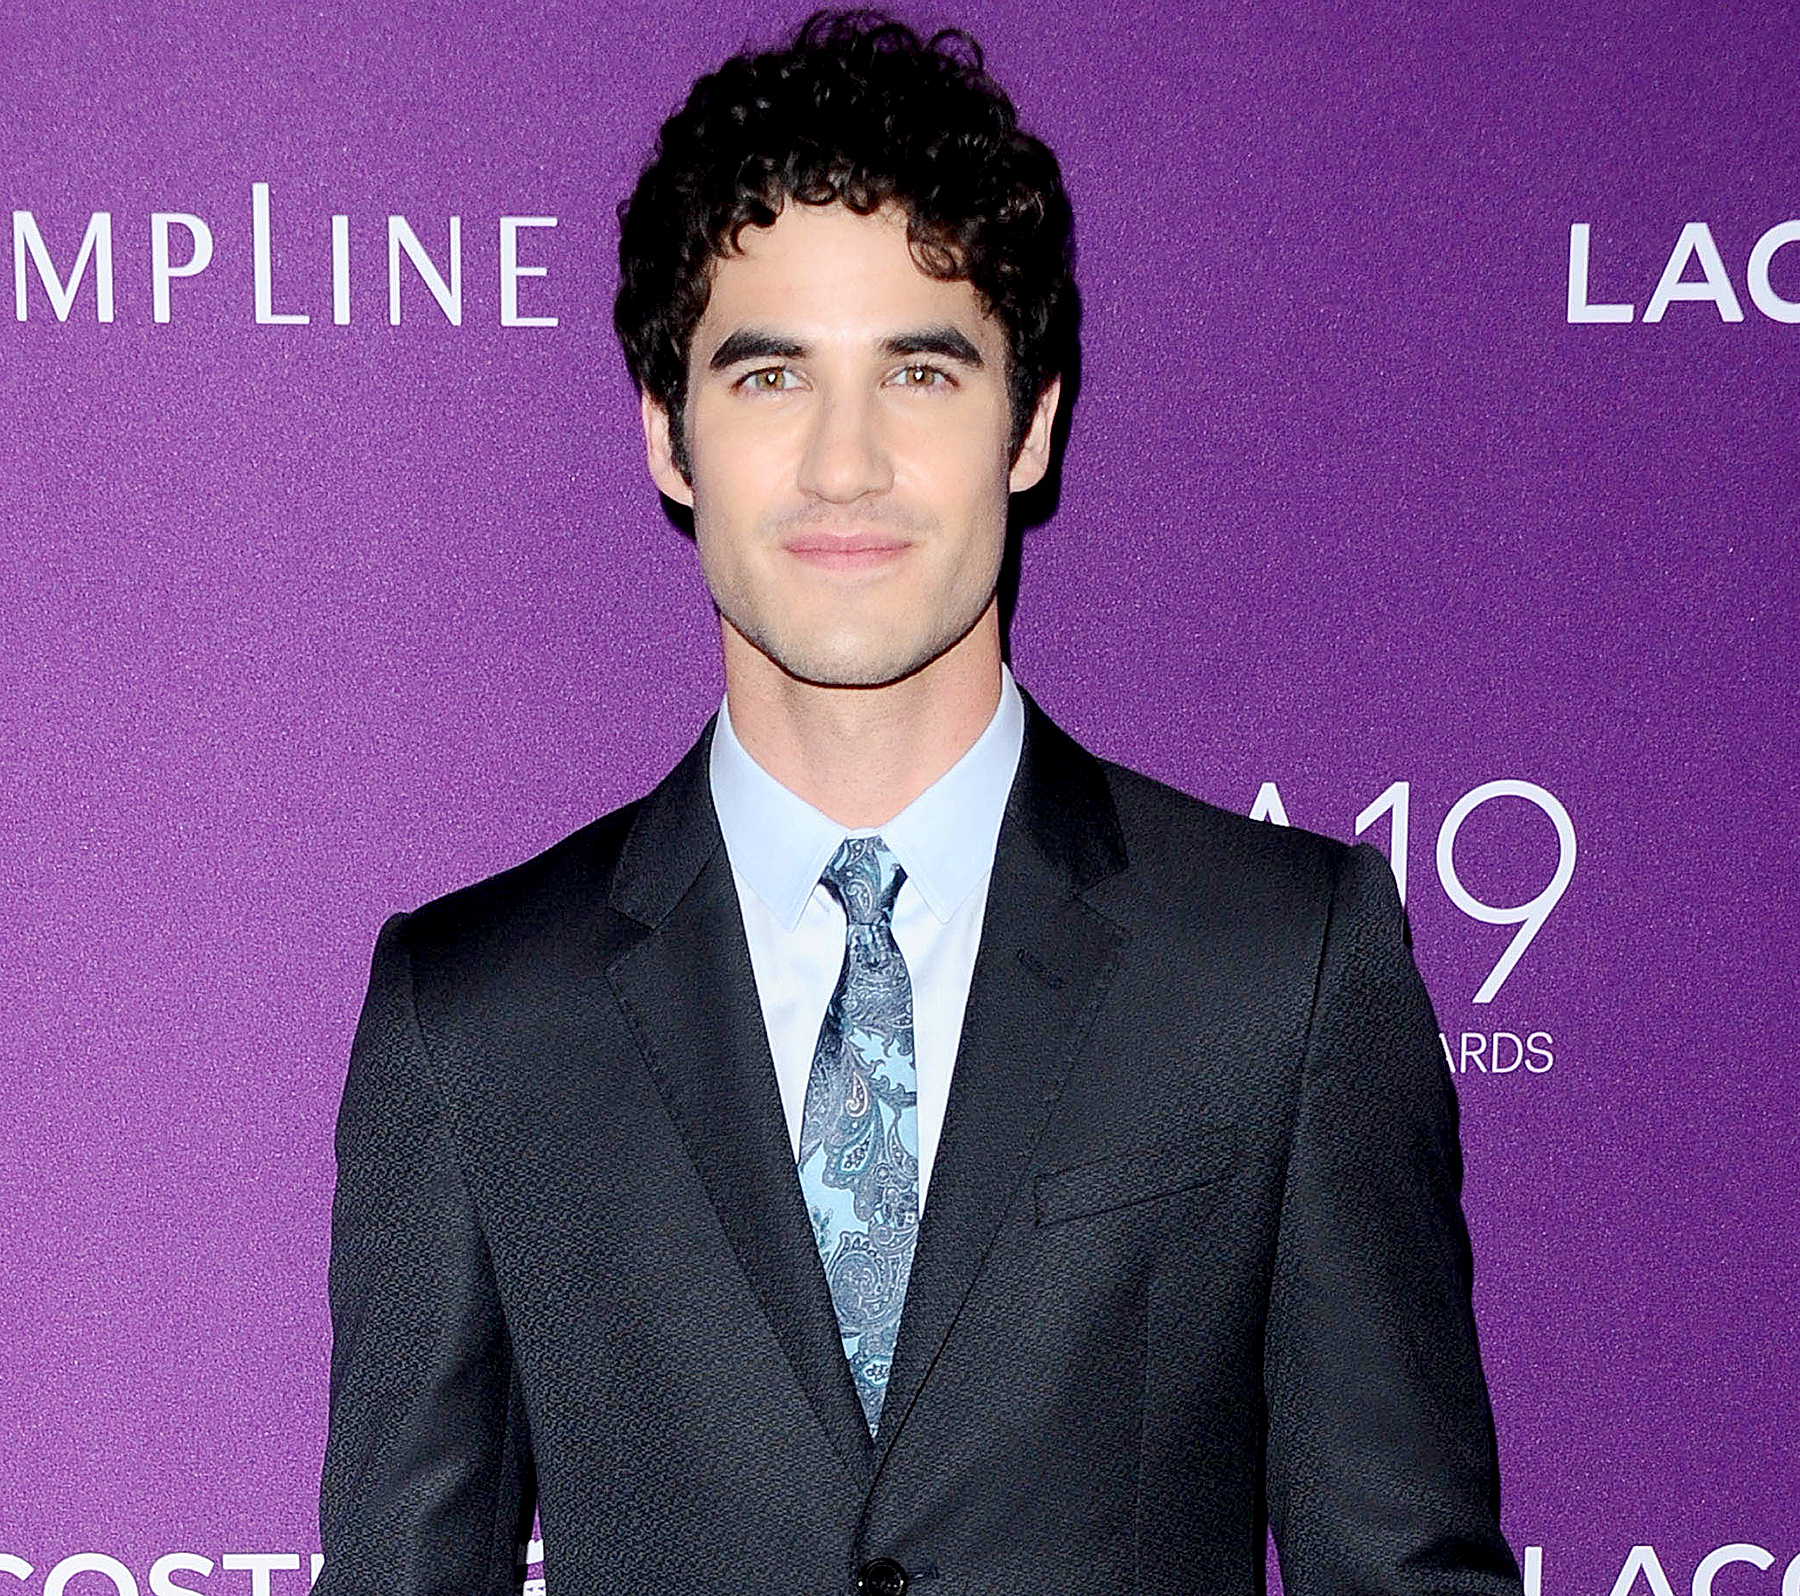 Darren Criss attends the 19th Costume Designers Guild Awards CDGA on Februrary 21, 2017.